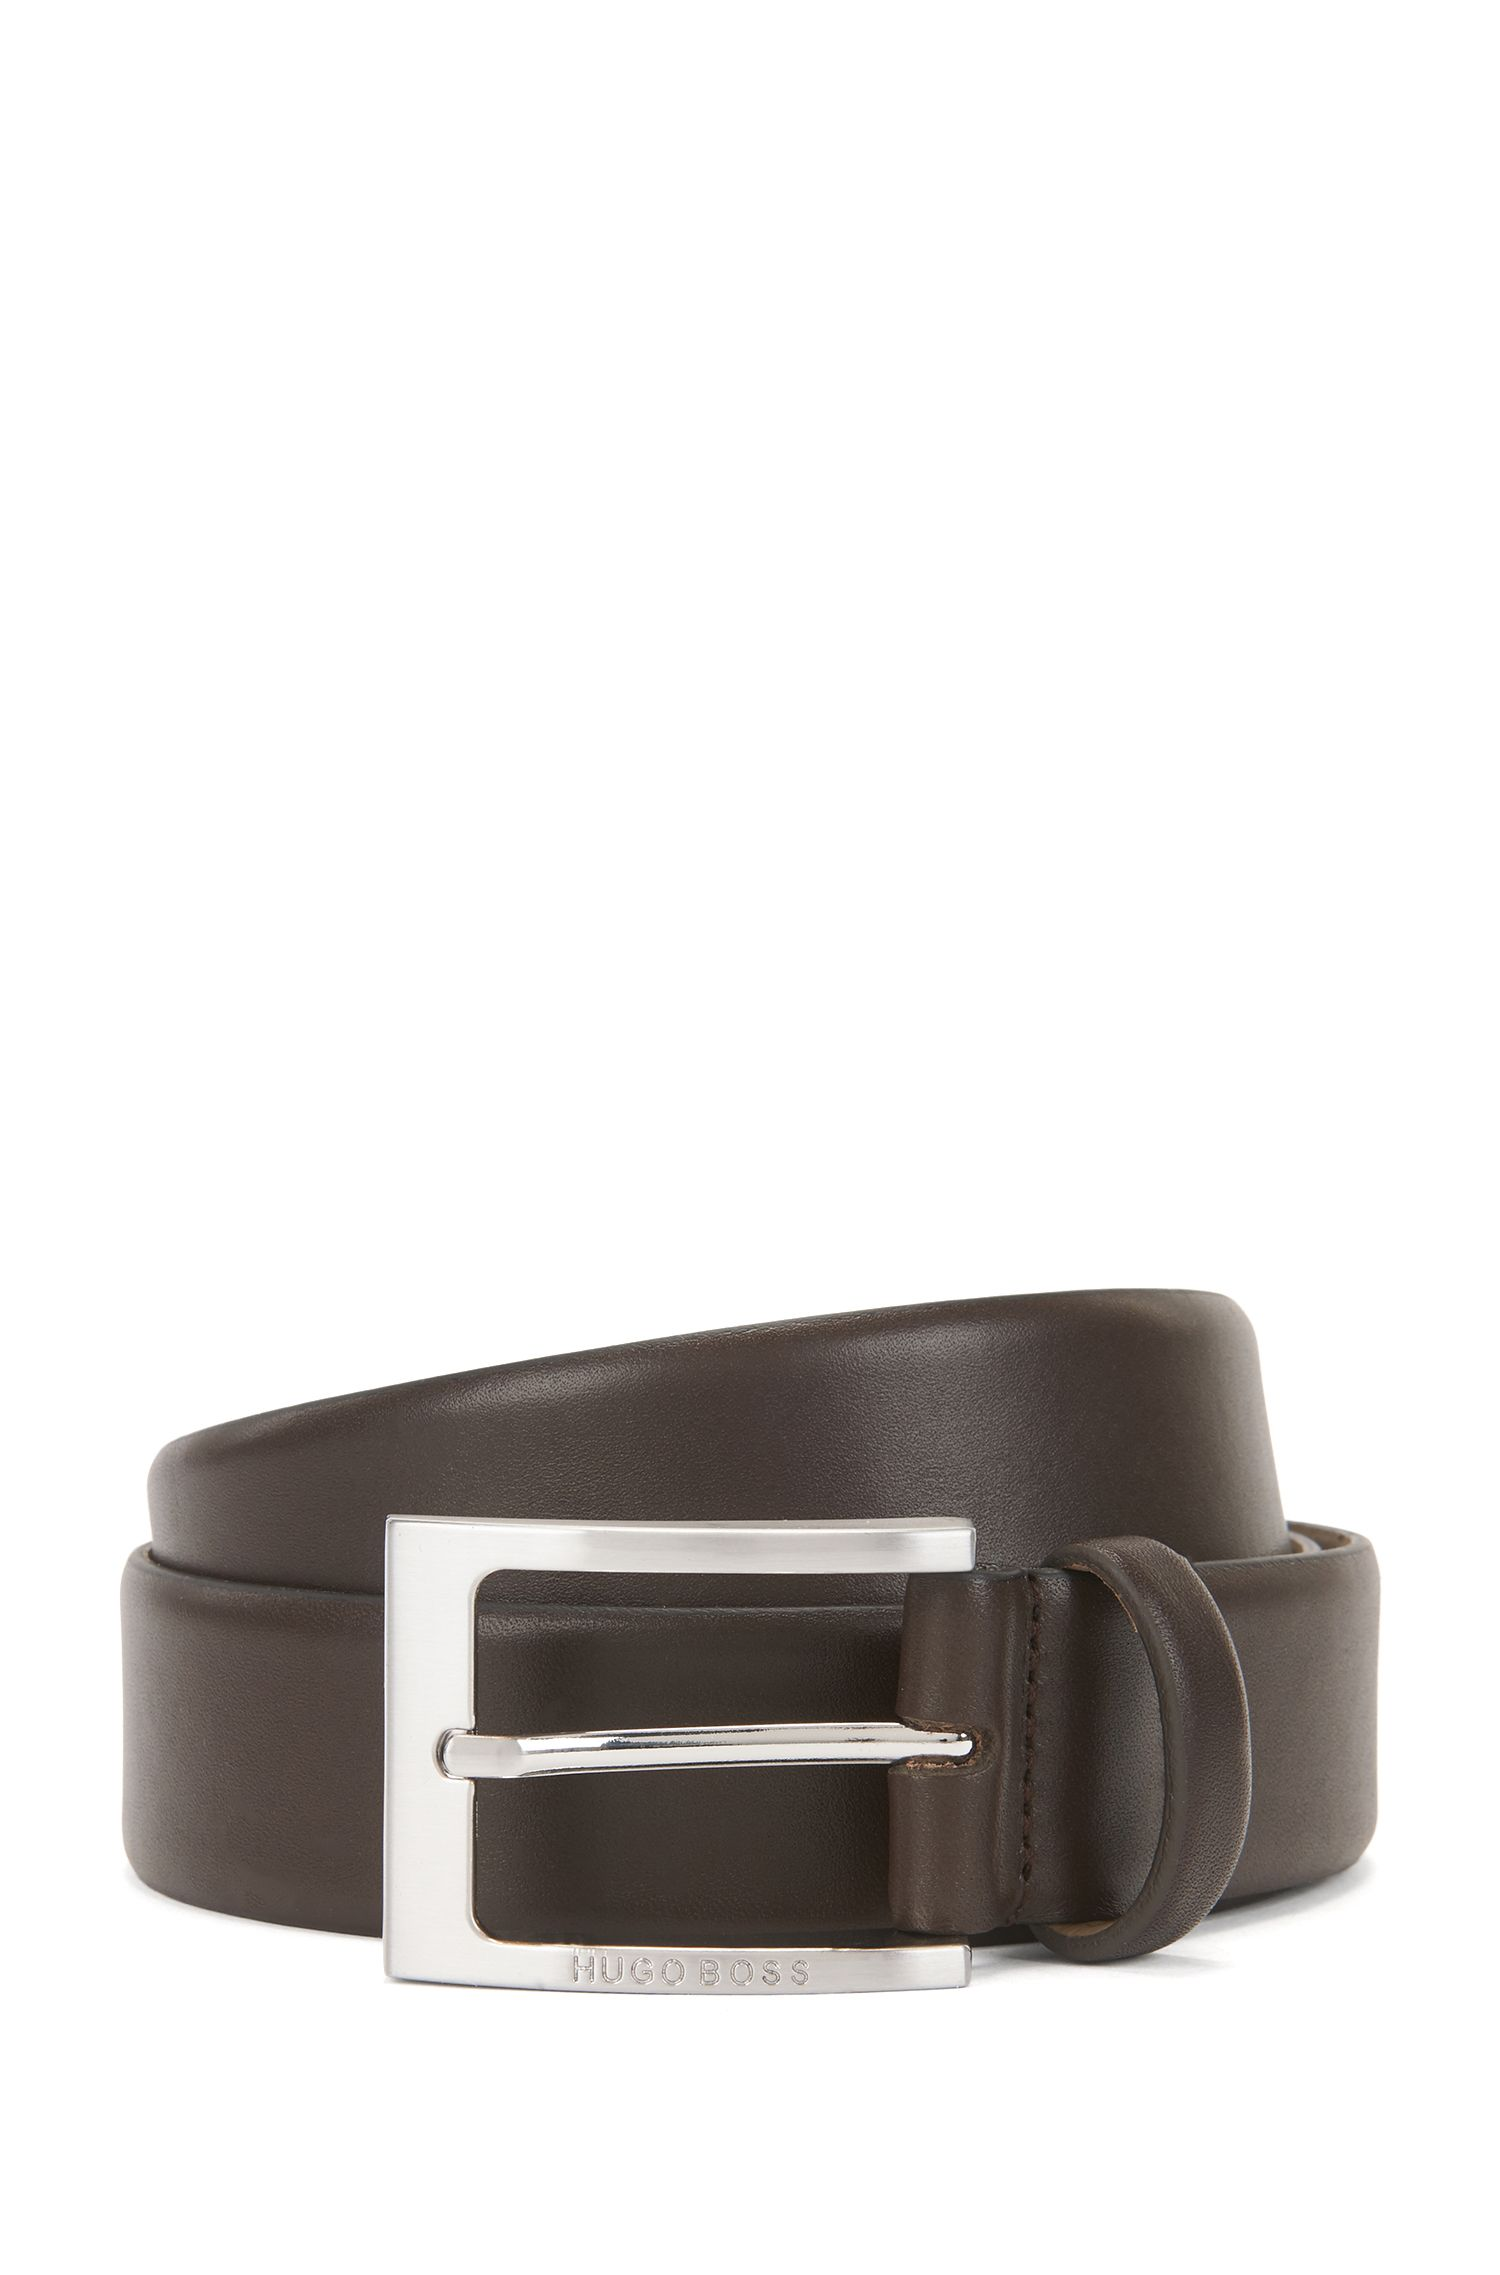 Leather belt with brushed-silver pin buckle